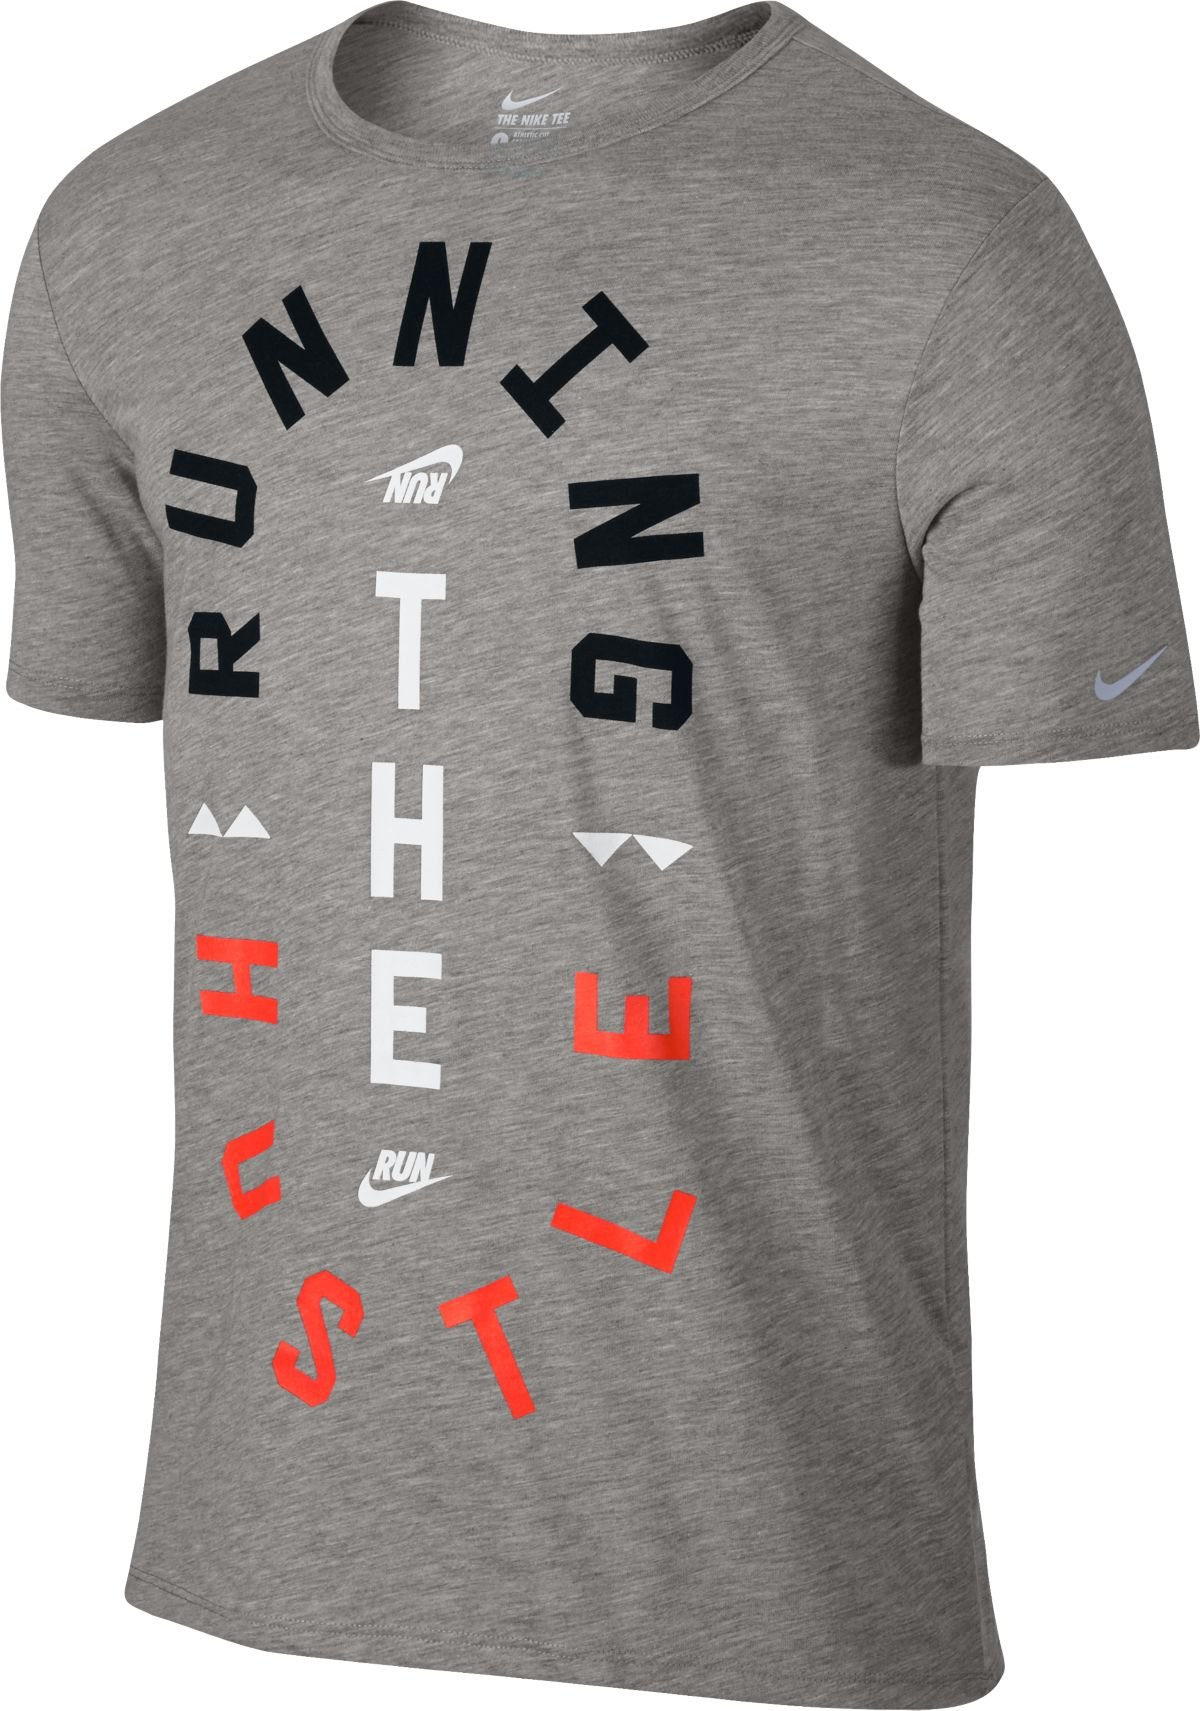 Triko Nike RUN P HUSTLE TEE